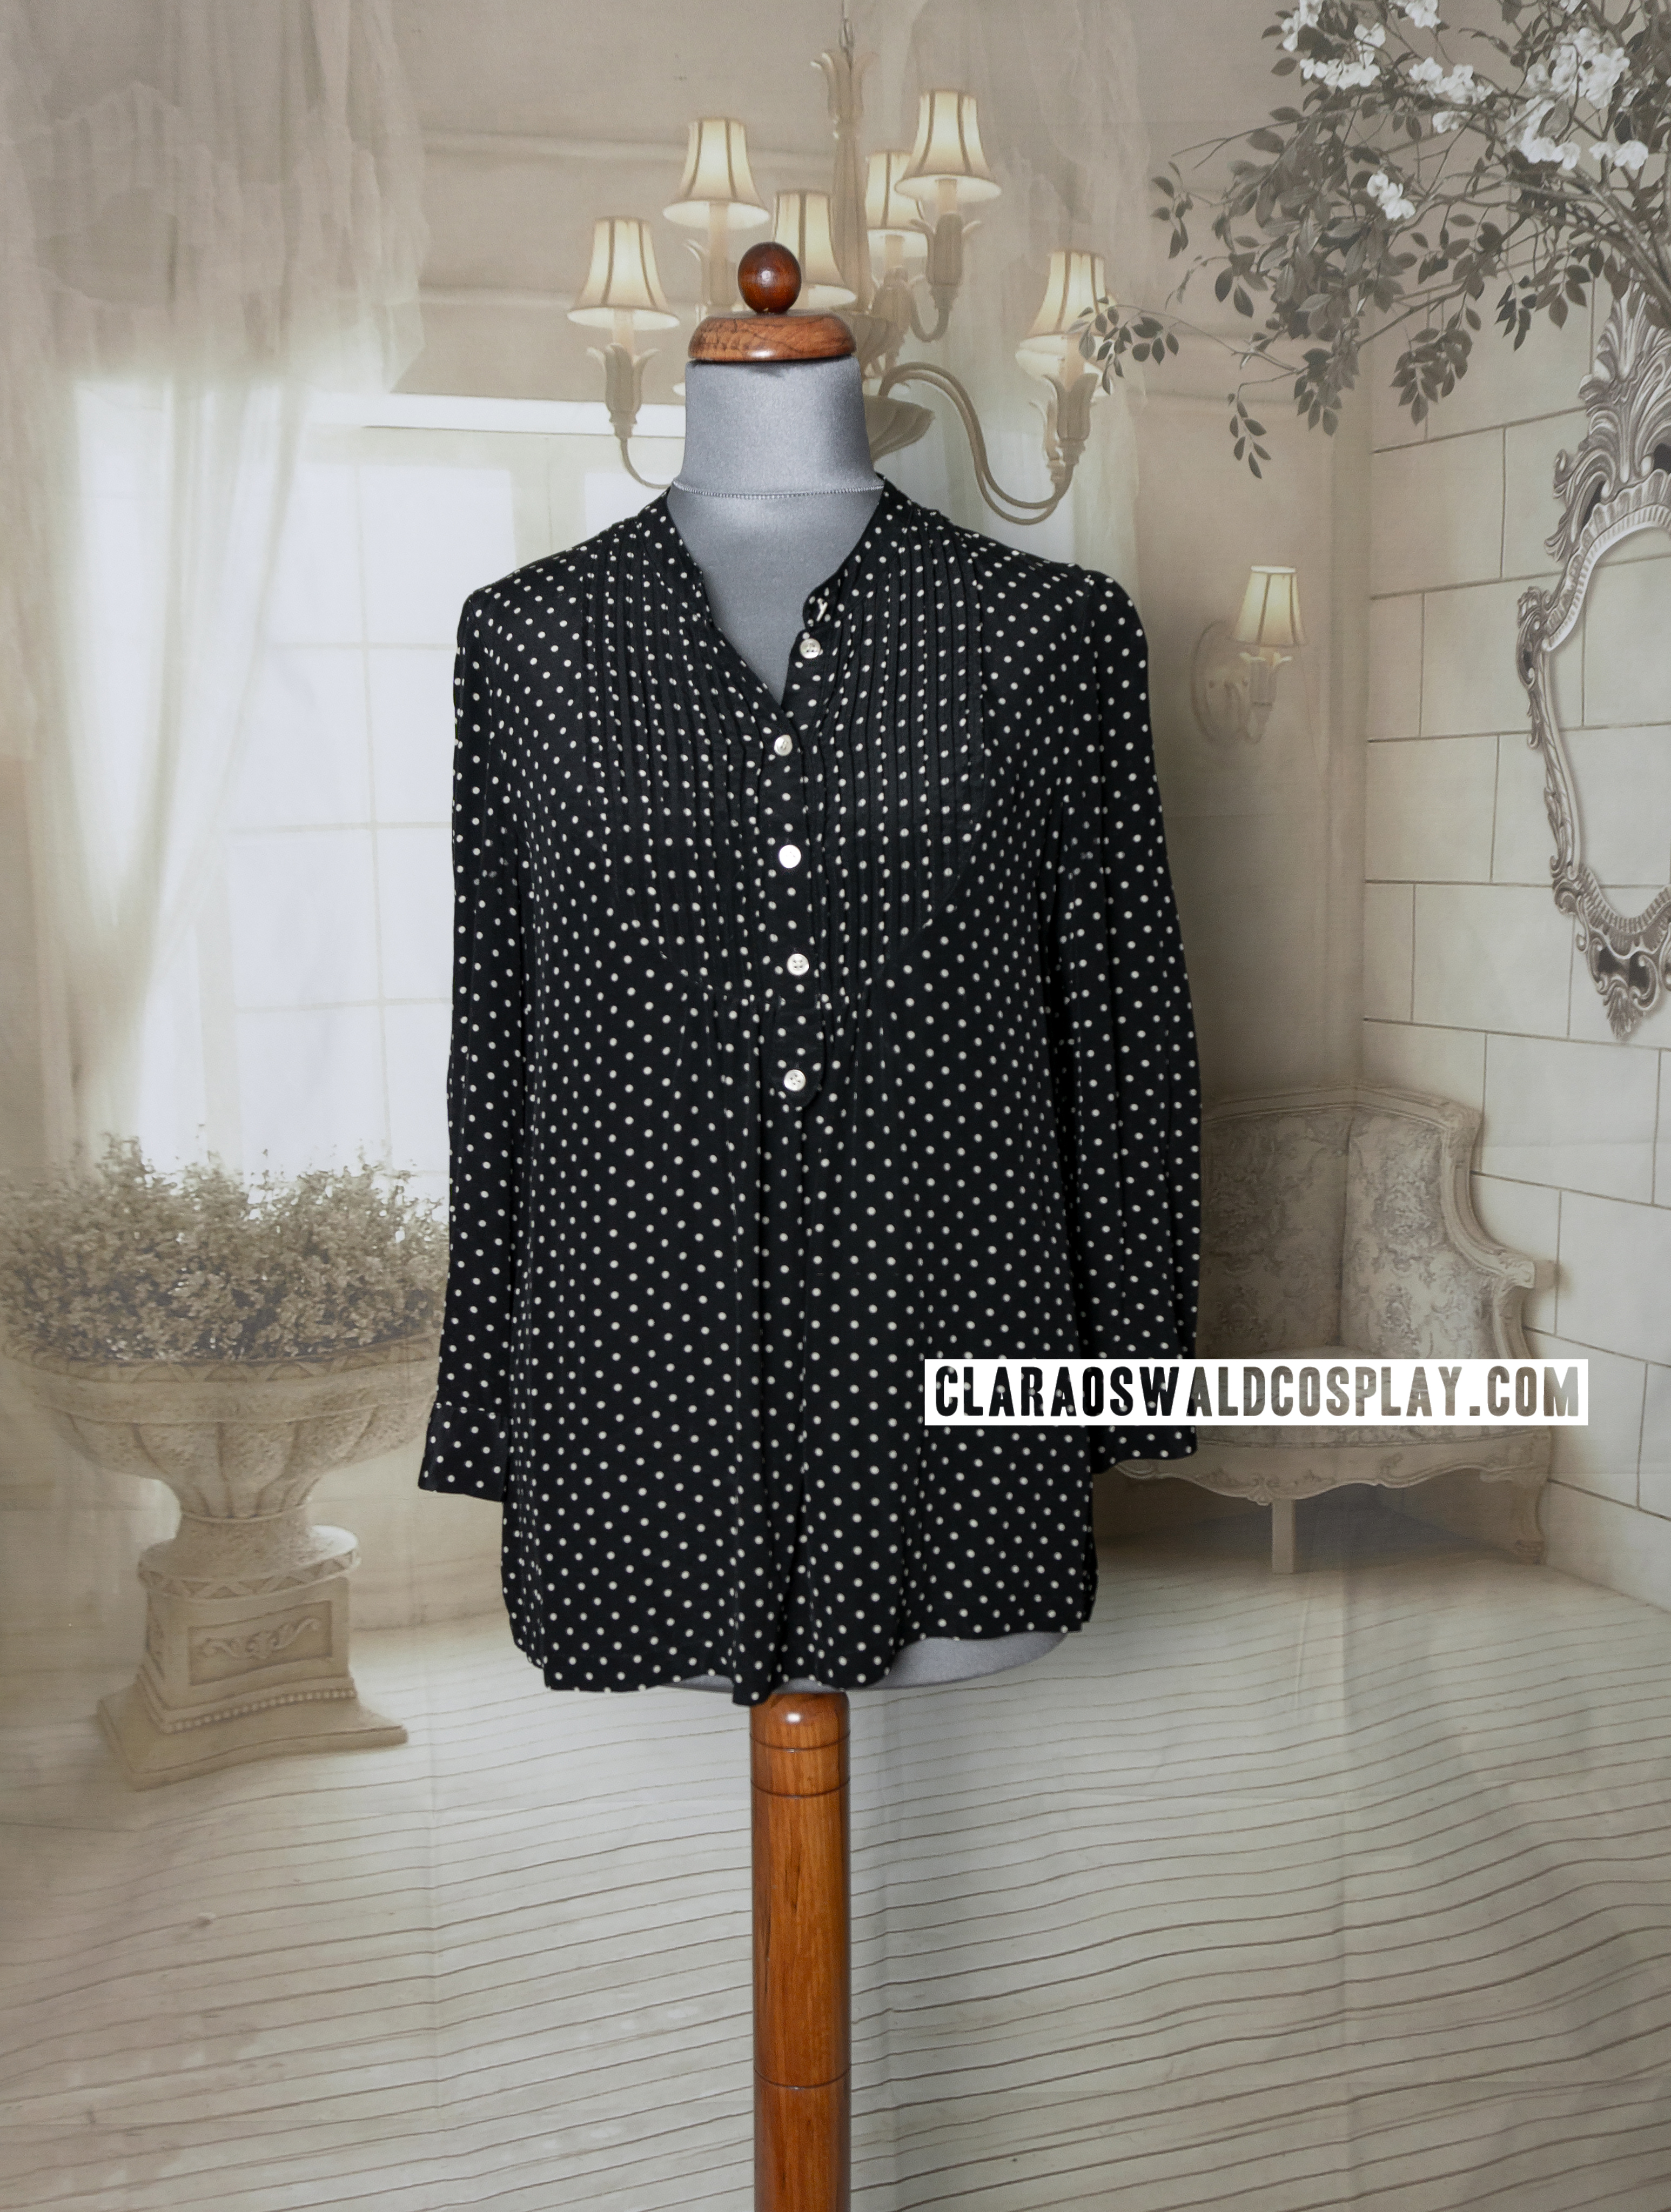 Clara Oswald's Jigsaw Bib & Tap Blouse when it's not tucked in